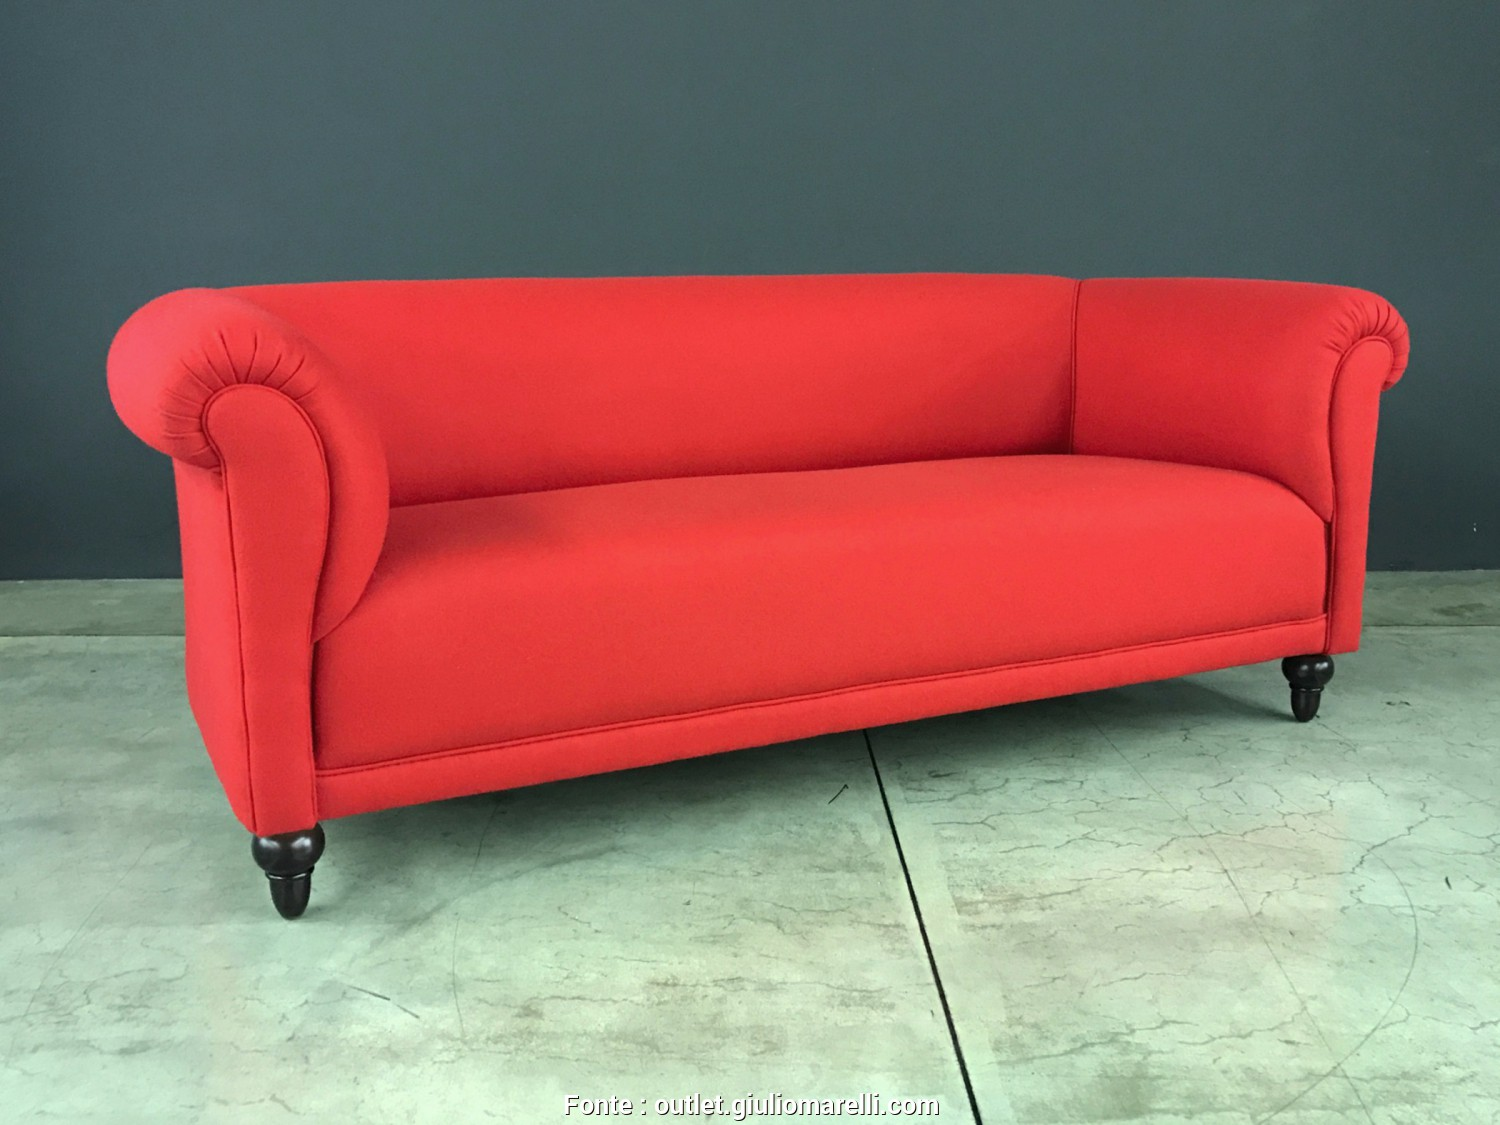 Chester Divano Vintage, Freddo Sofa Vintage Chesterfield Contract, New Chester [New Chester]